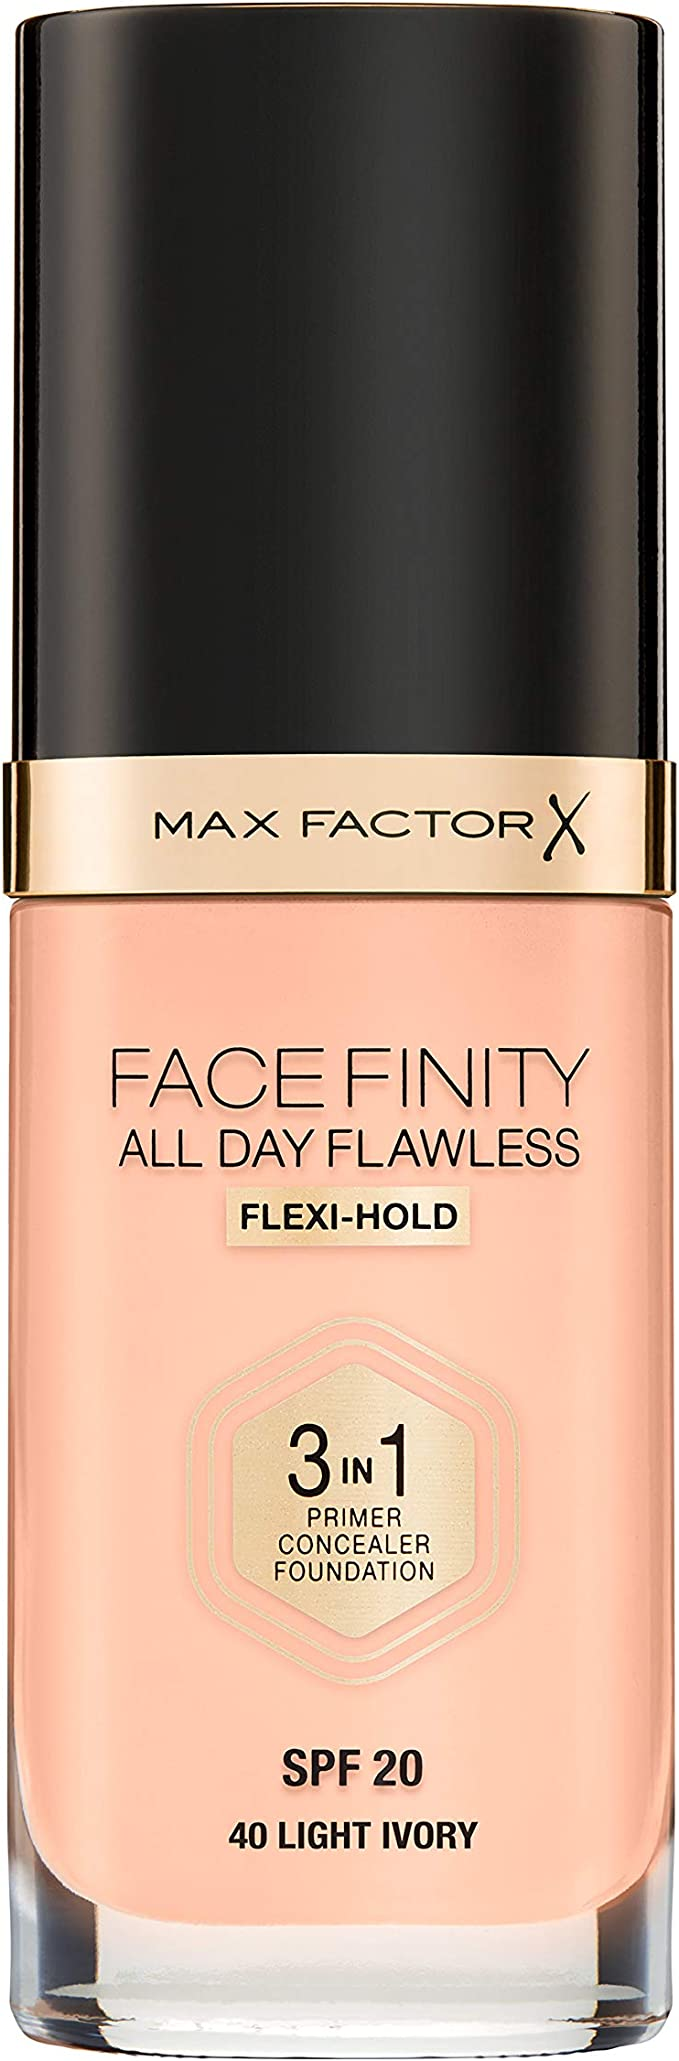 Max Factor Facefinity All Day Flawless 3 In 1 Foundation SPF 20, No. 40 Light Ivory